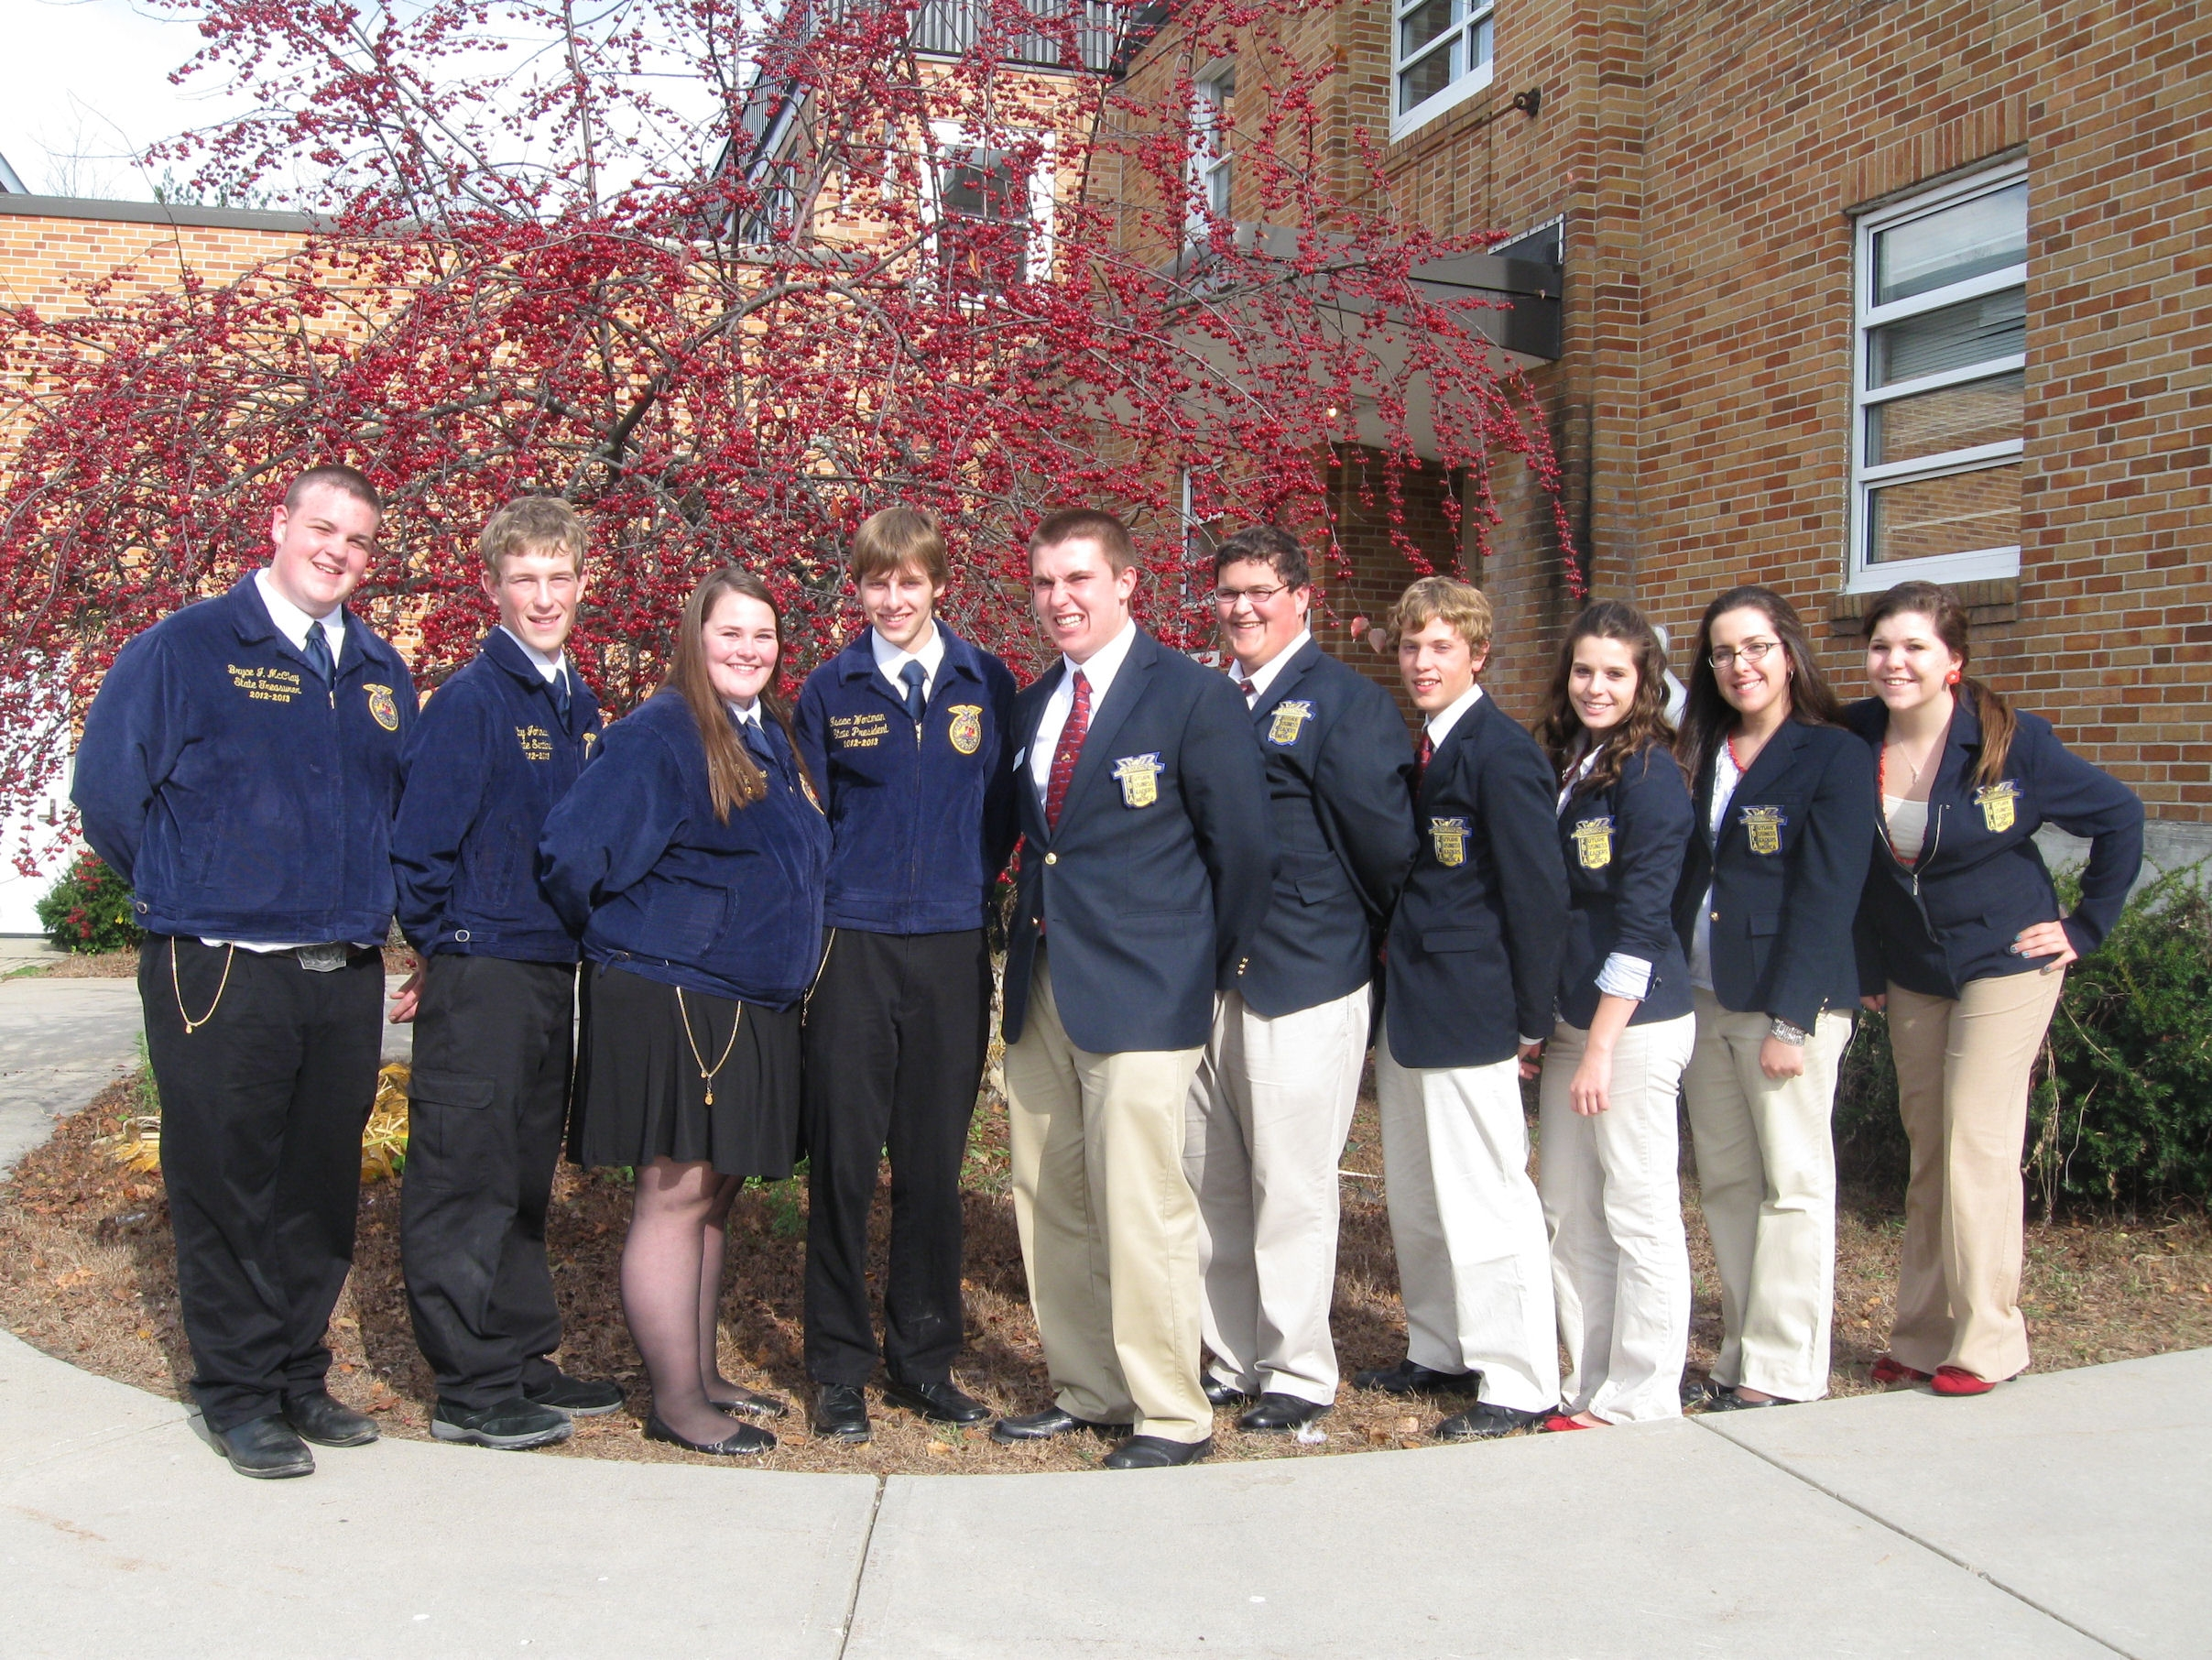 Maine FFA state officers and FBLA state officers joined forces to provide leadership training to high school students at the Augusta Armory.